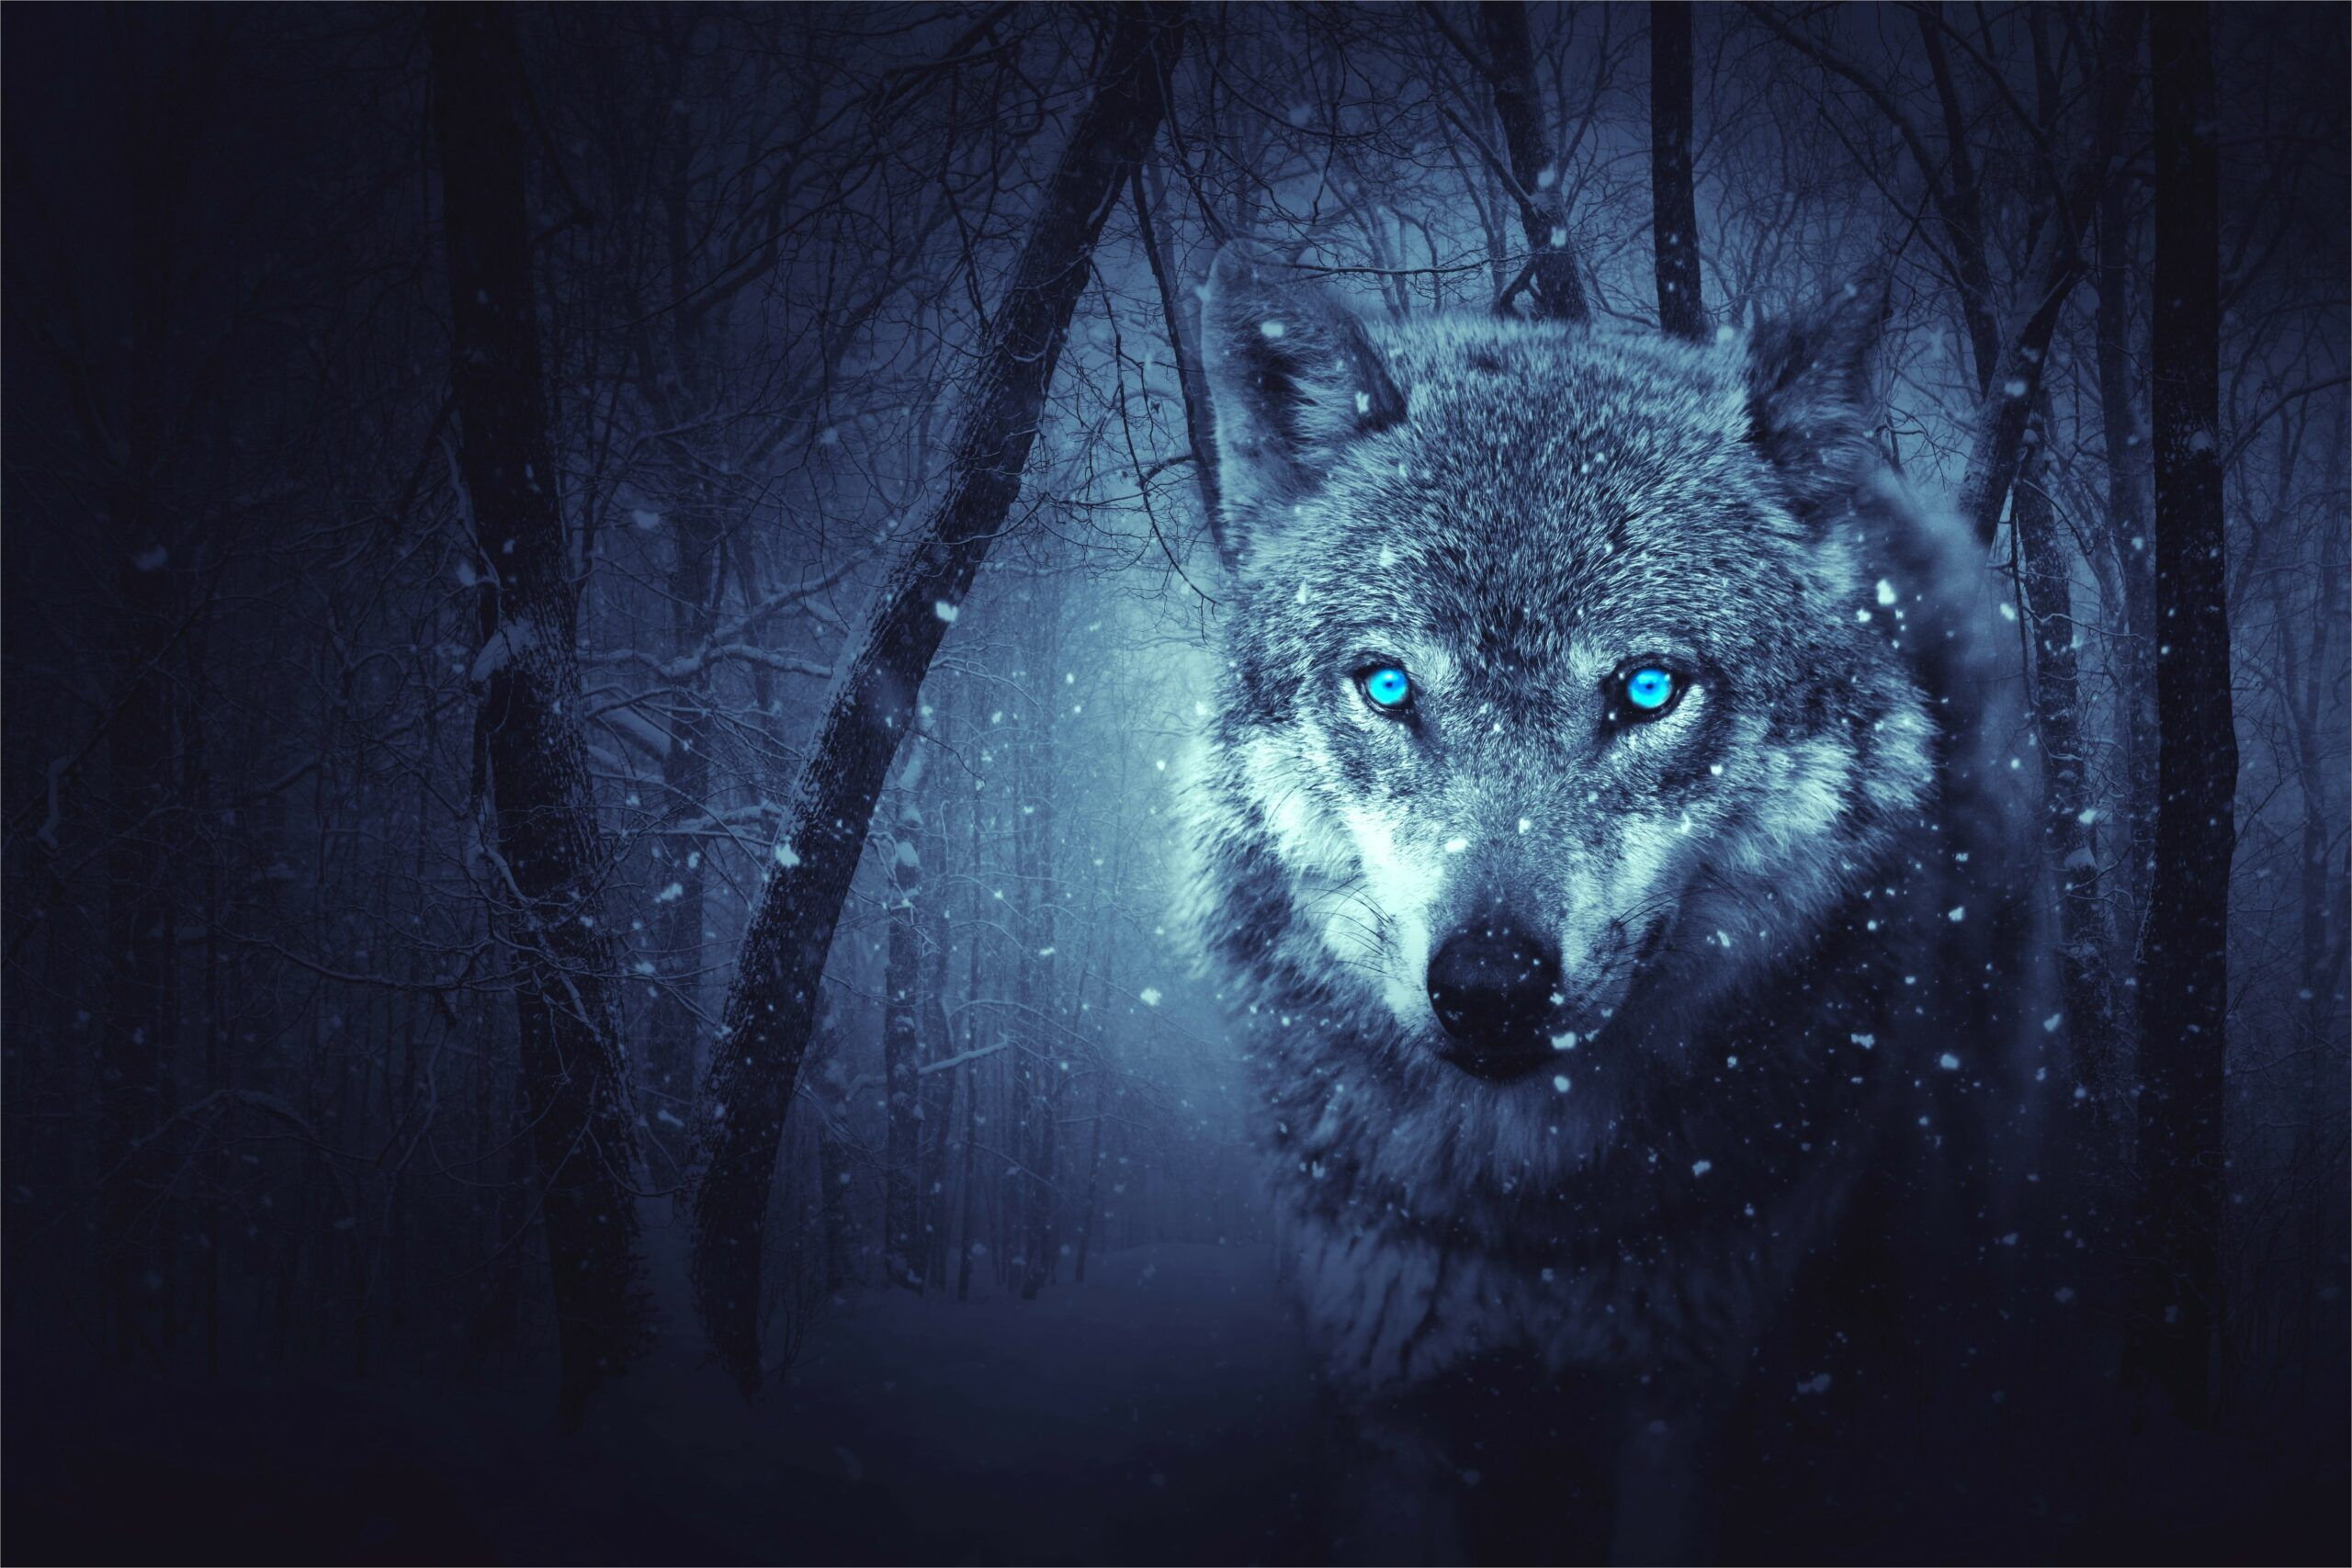 4k Resolution Wallpaper Wolf With Girl In 2020 Wolf Wallpaper Fantasy Wolf Animal Categories